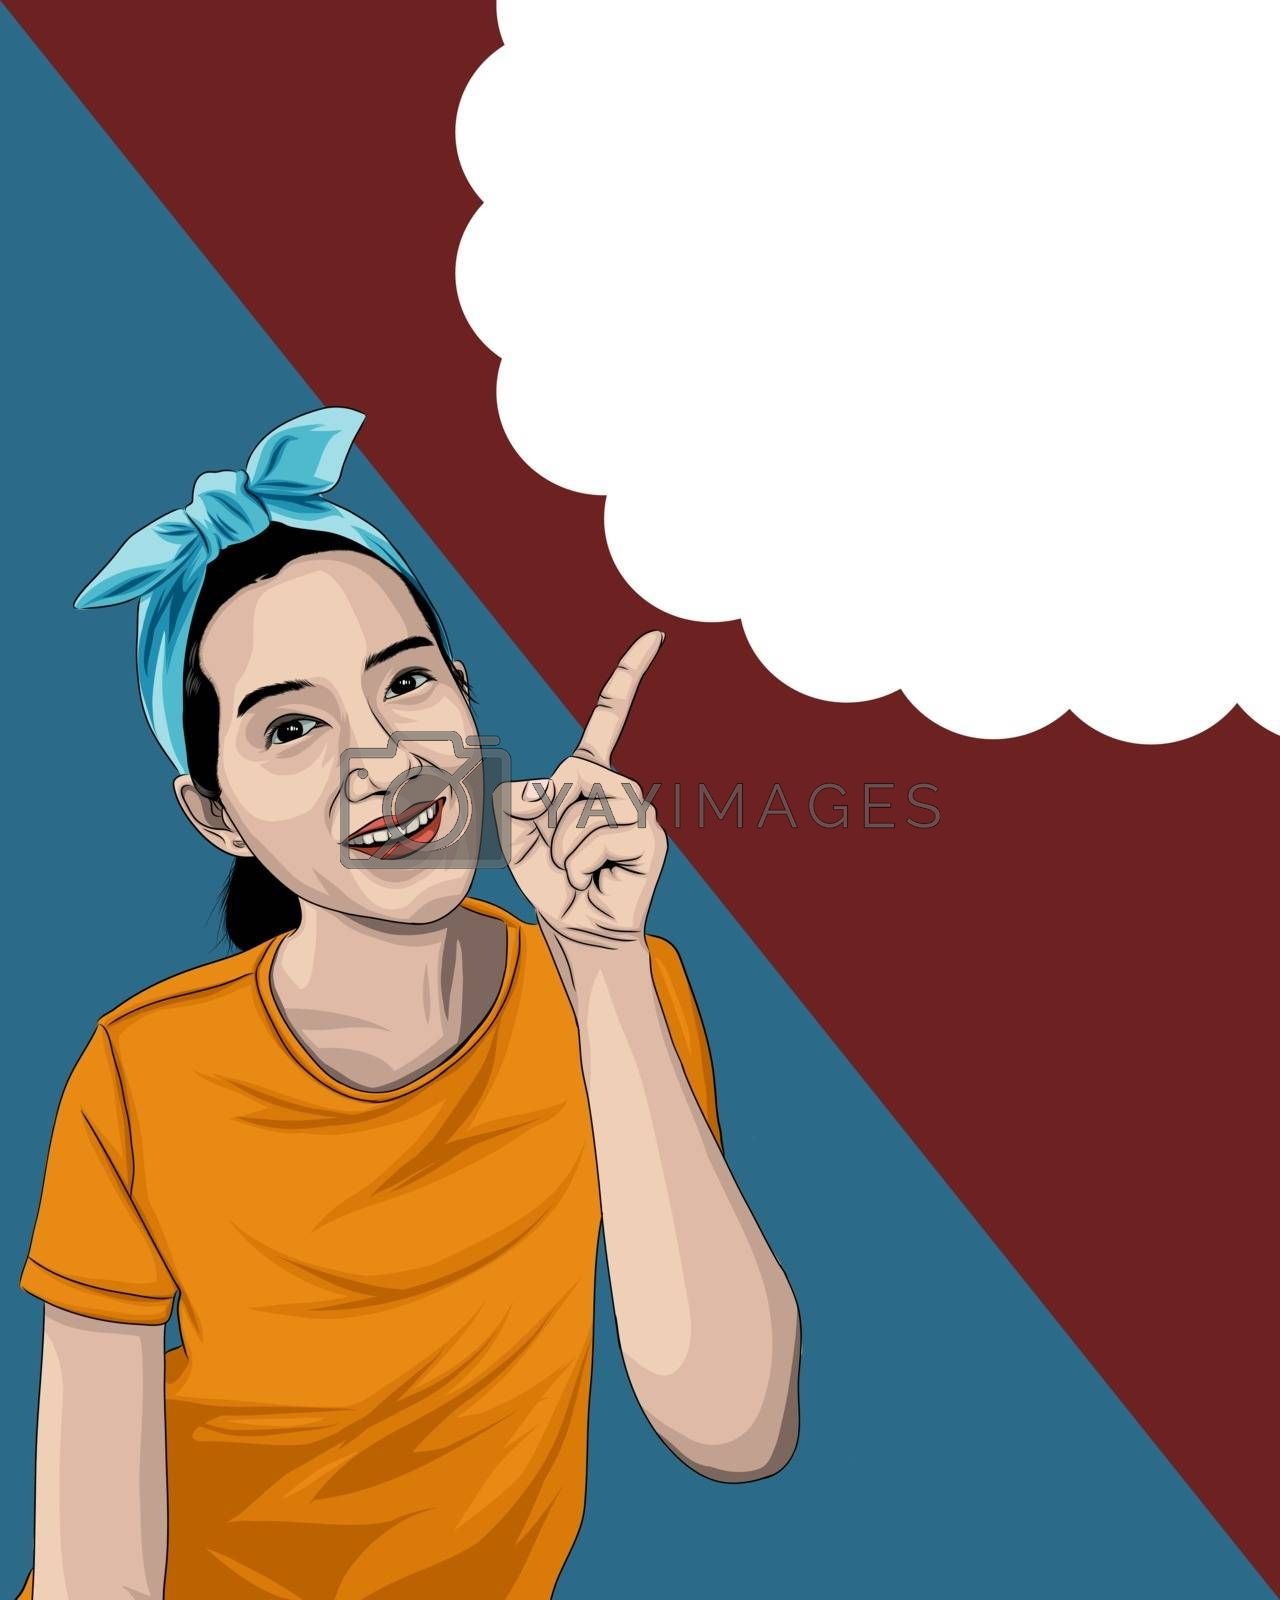 The woman was pointing her finger at the cloud. She smiled, glad, excited to see what was there. Suitable for advertising.